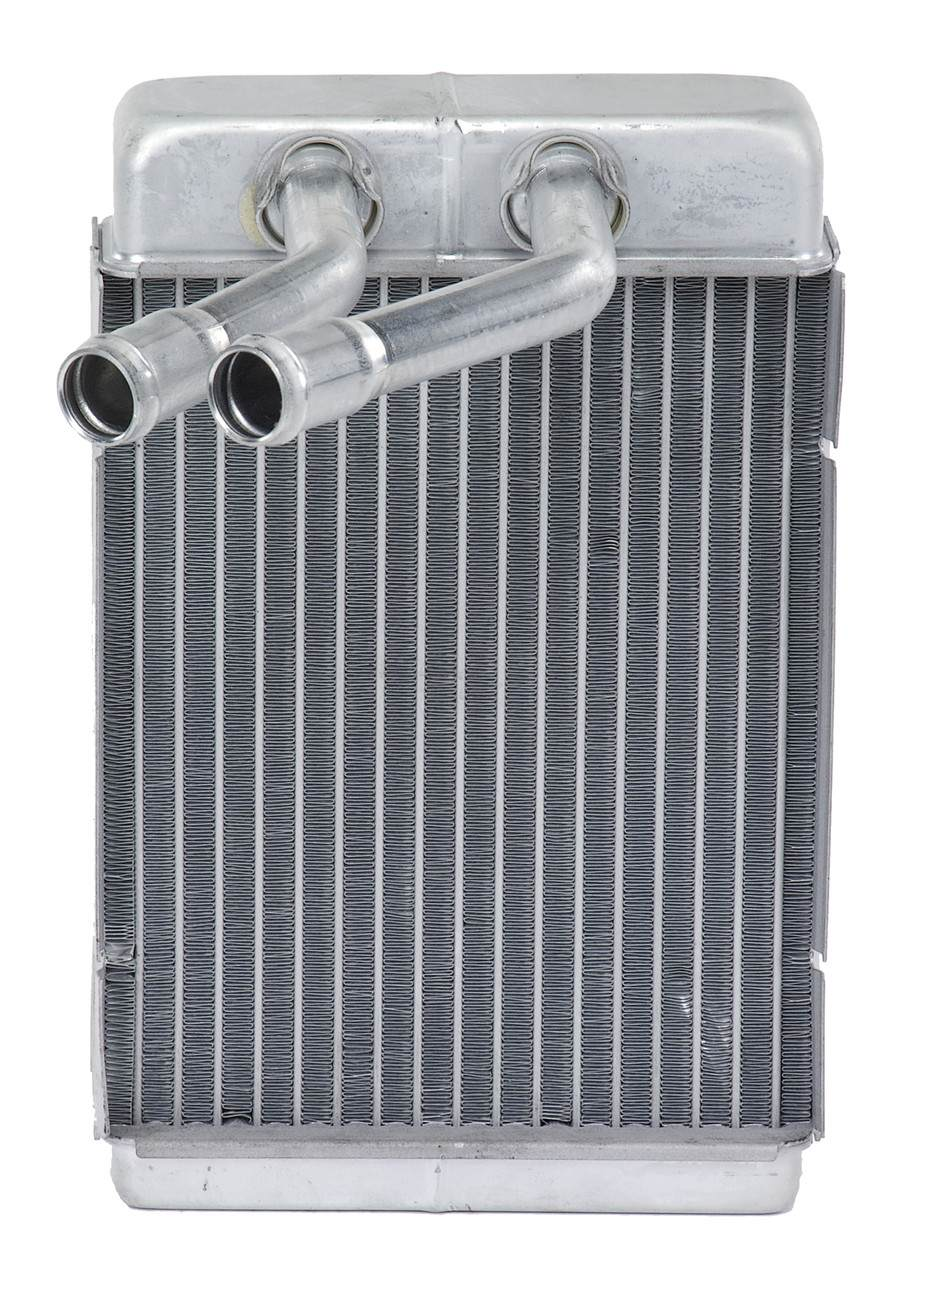 2000 Mercury Grand Marquis Heater Core Replacement